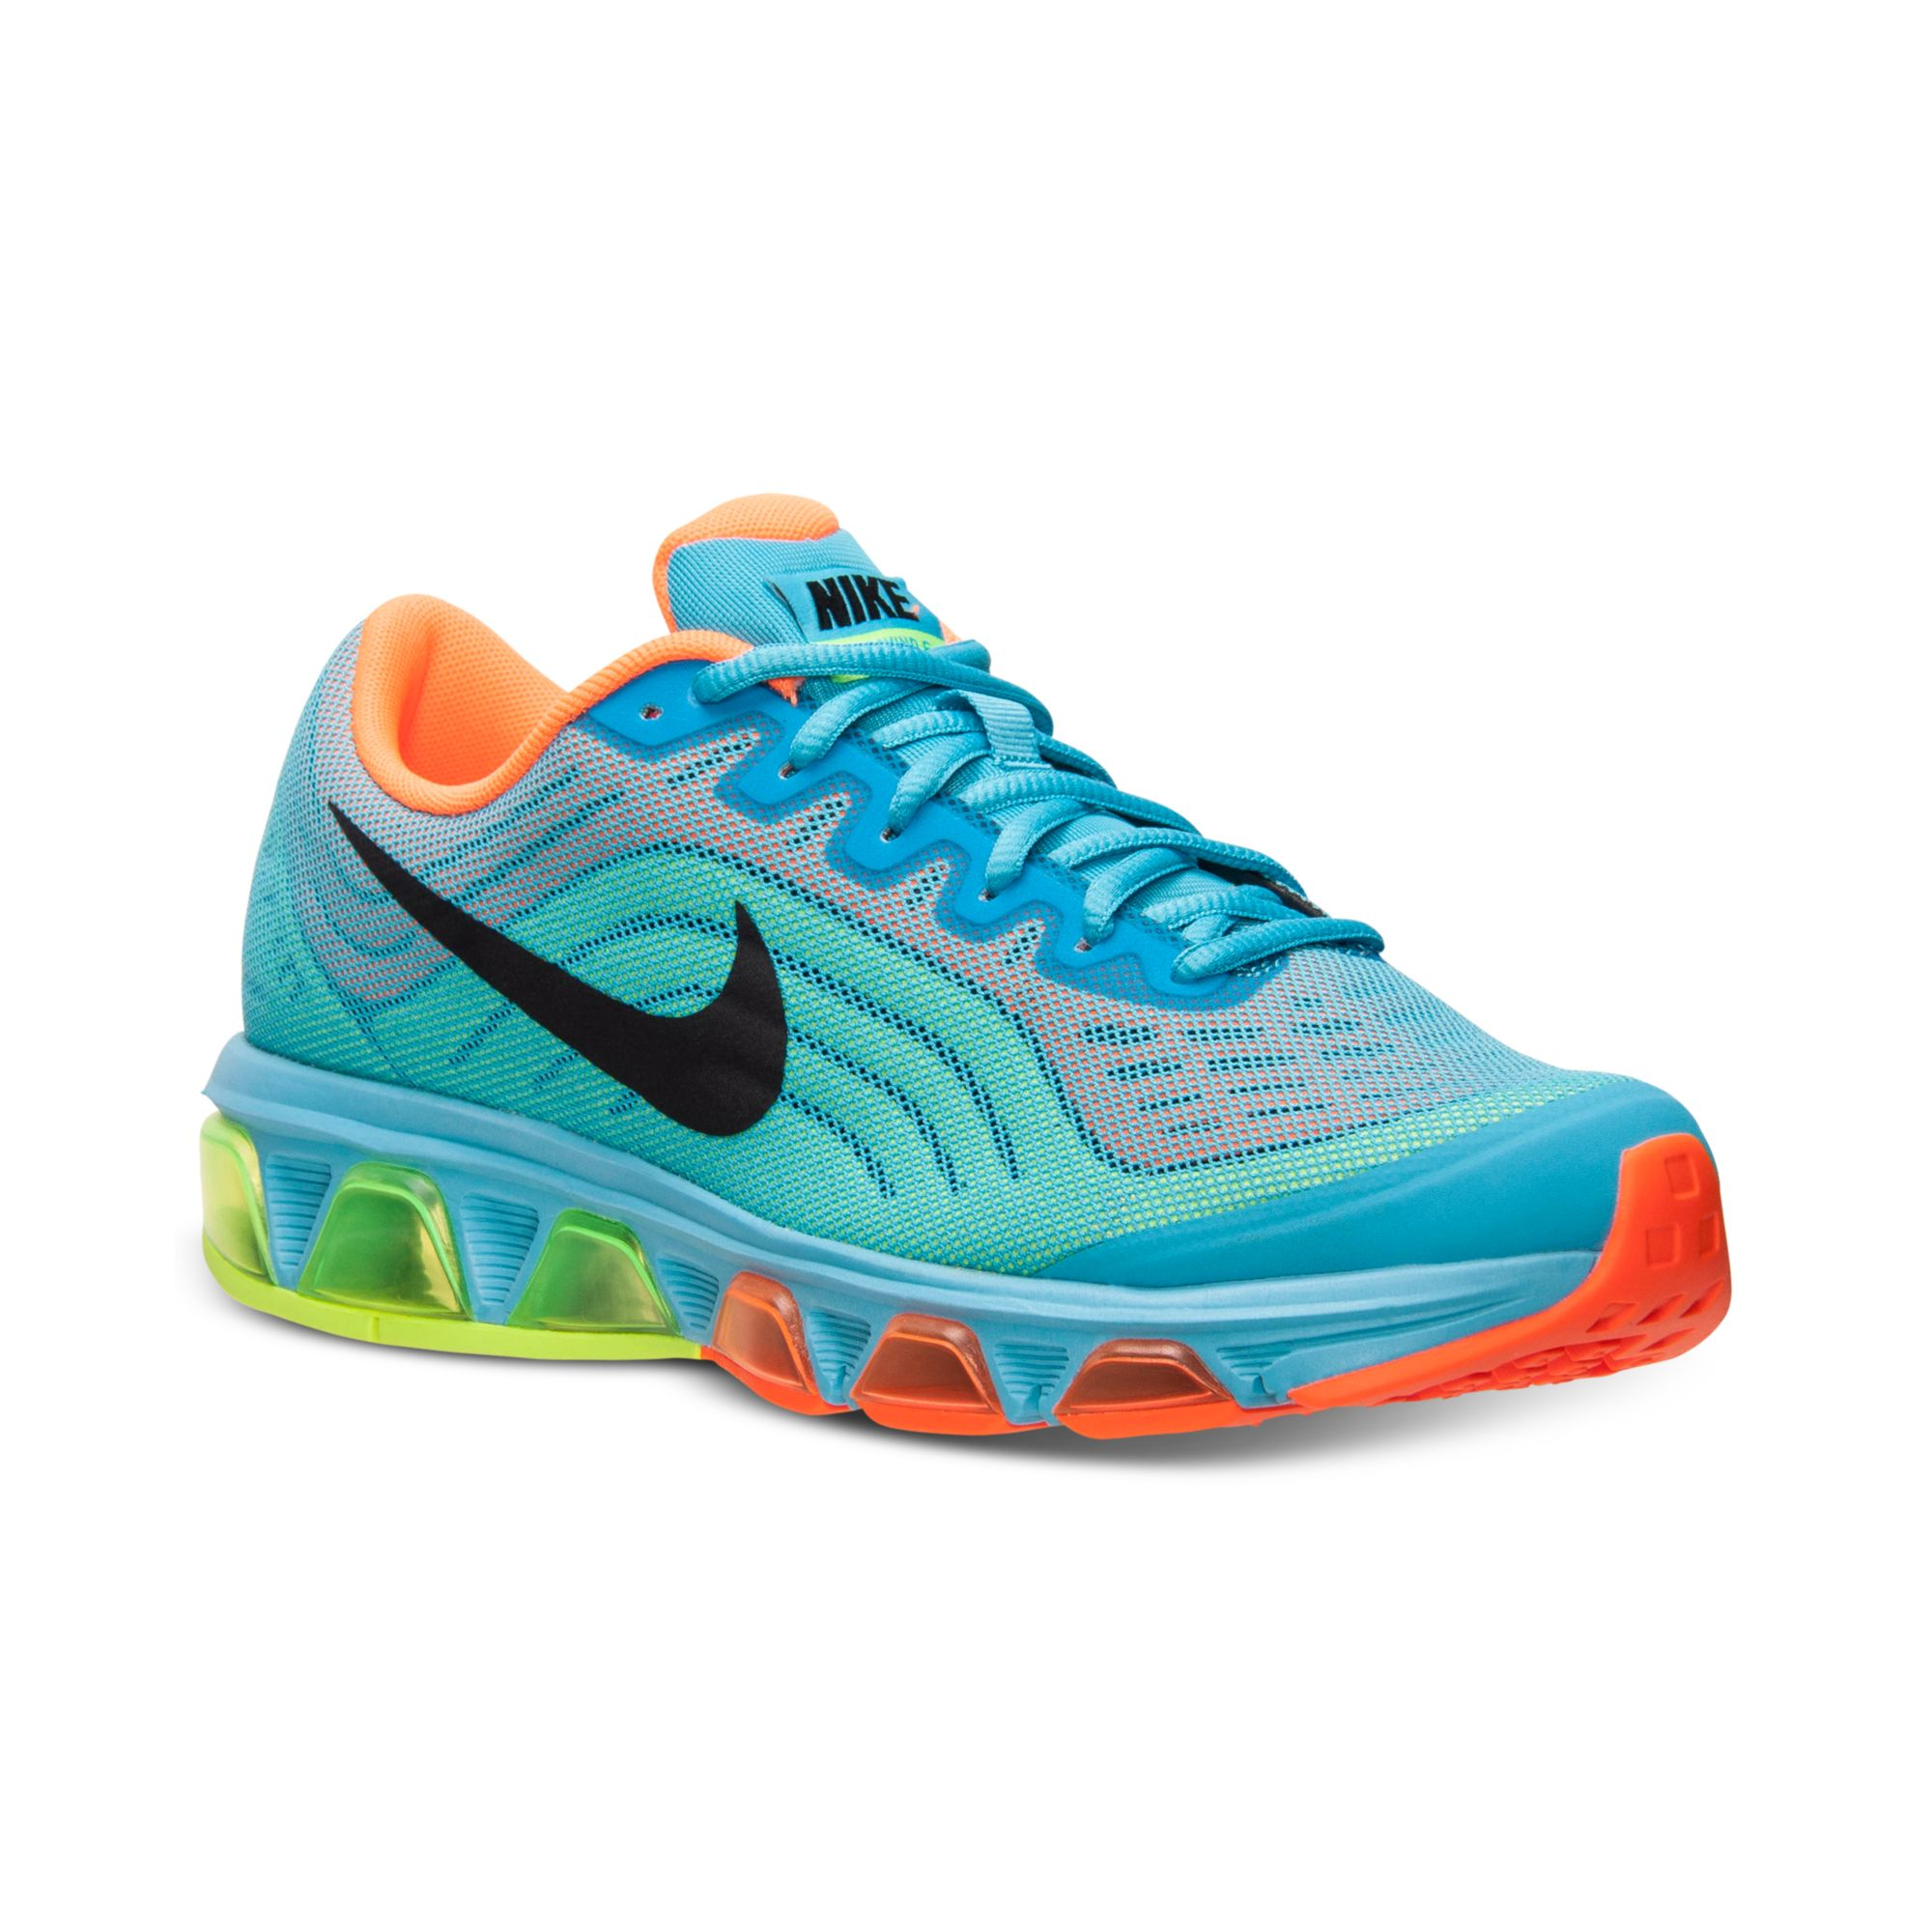 95a1f8541791 ... best lyst nike mens air max tailwind 6 running sneakers from finish  94c60 094bf